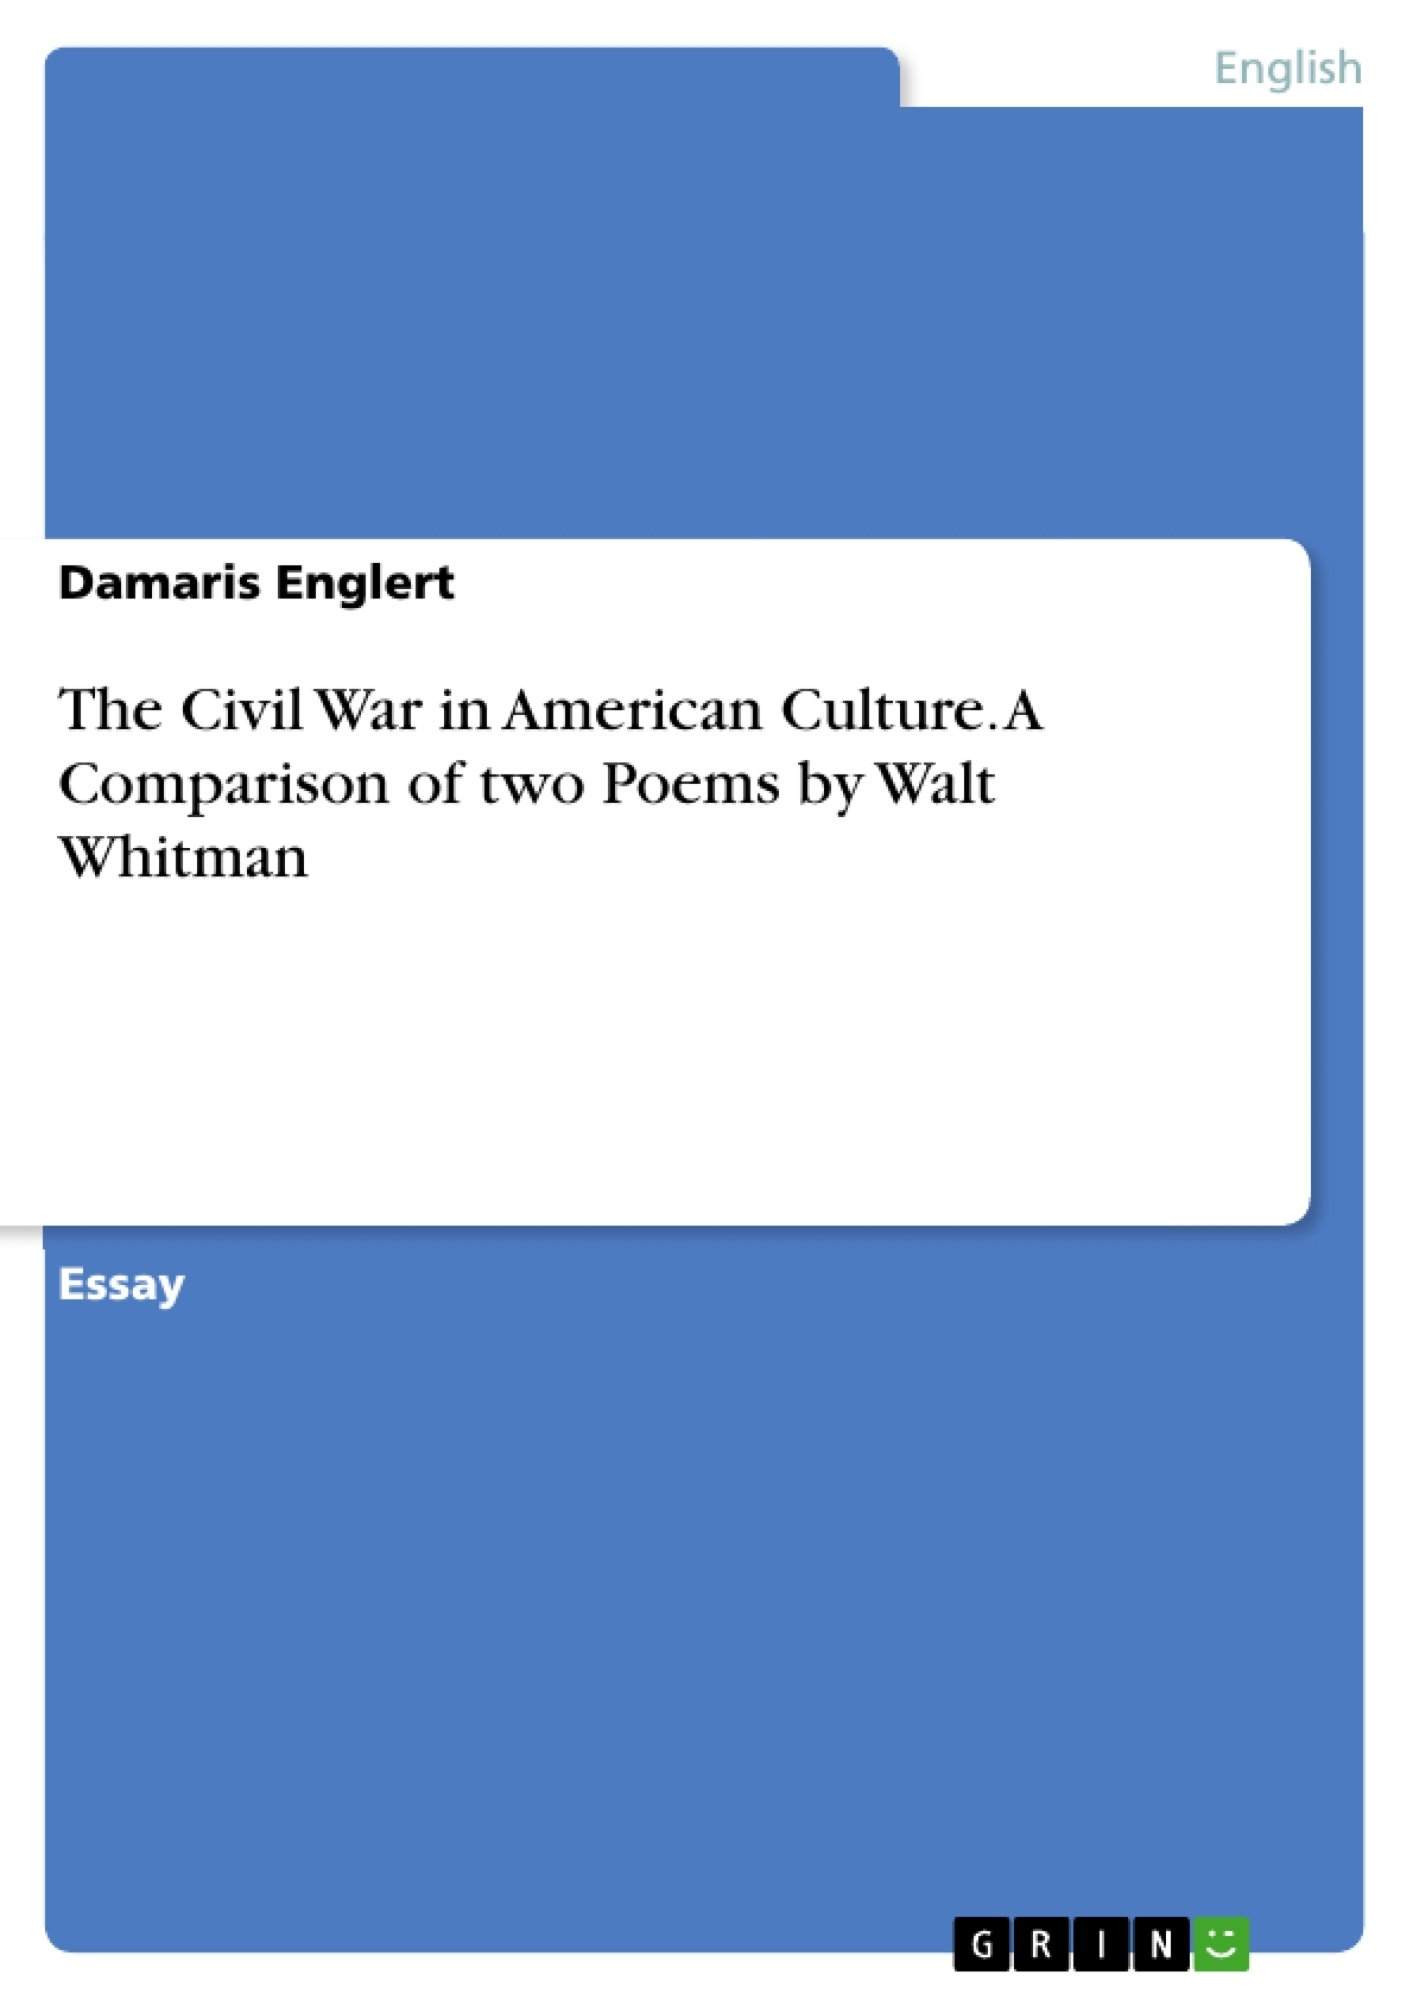 Title: The Civil War in American Culture. A Comparison of two Poems by Walt Whitman